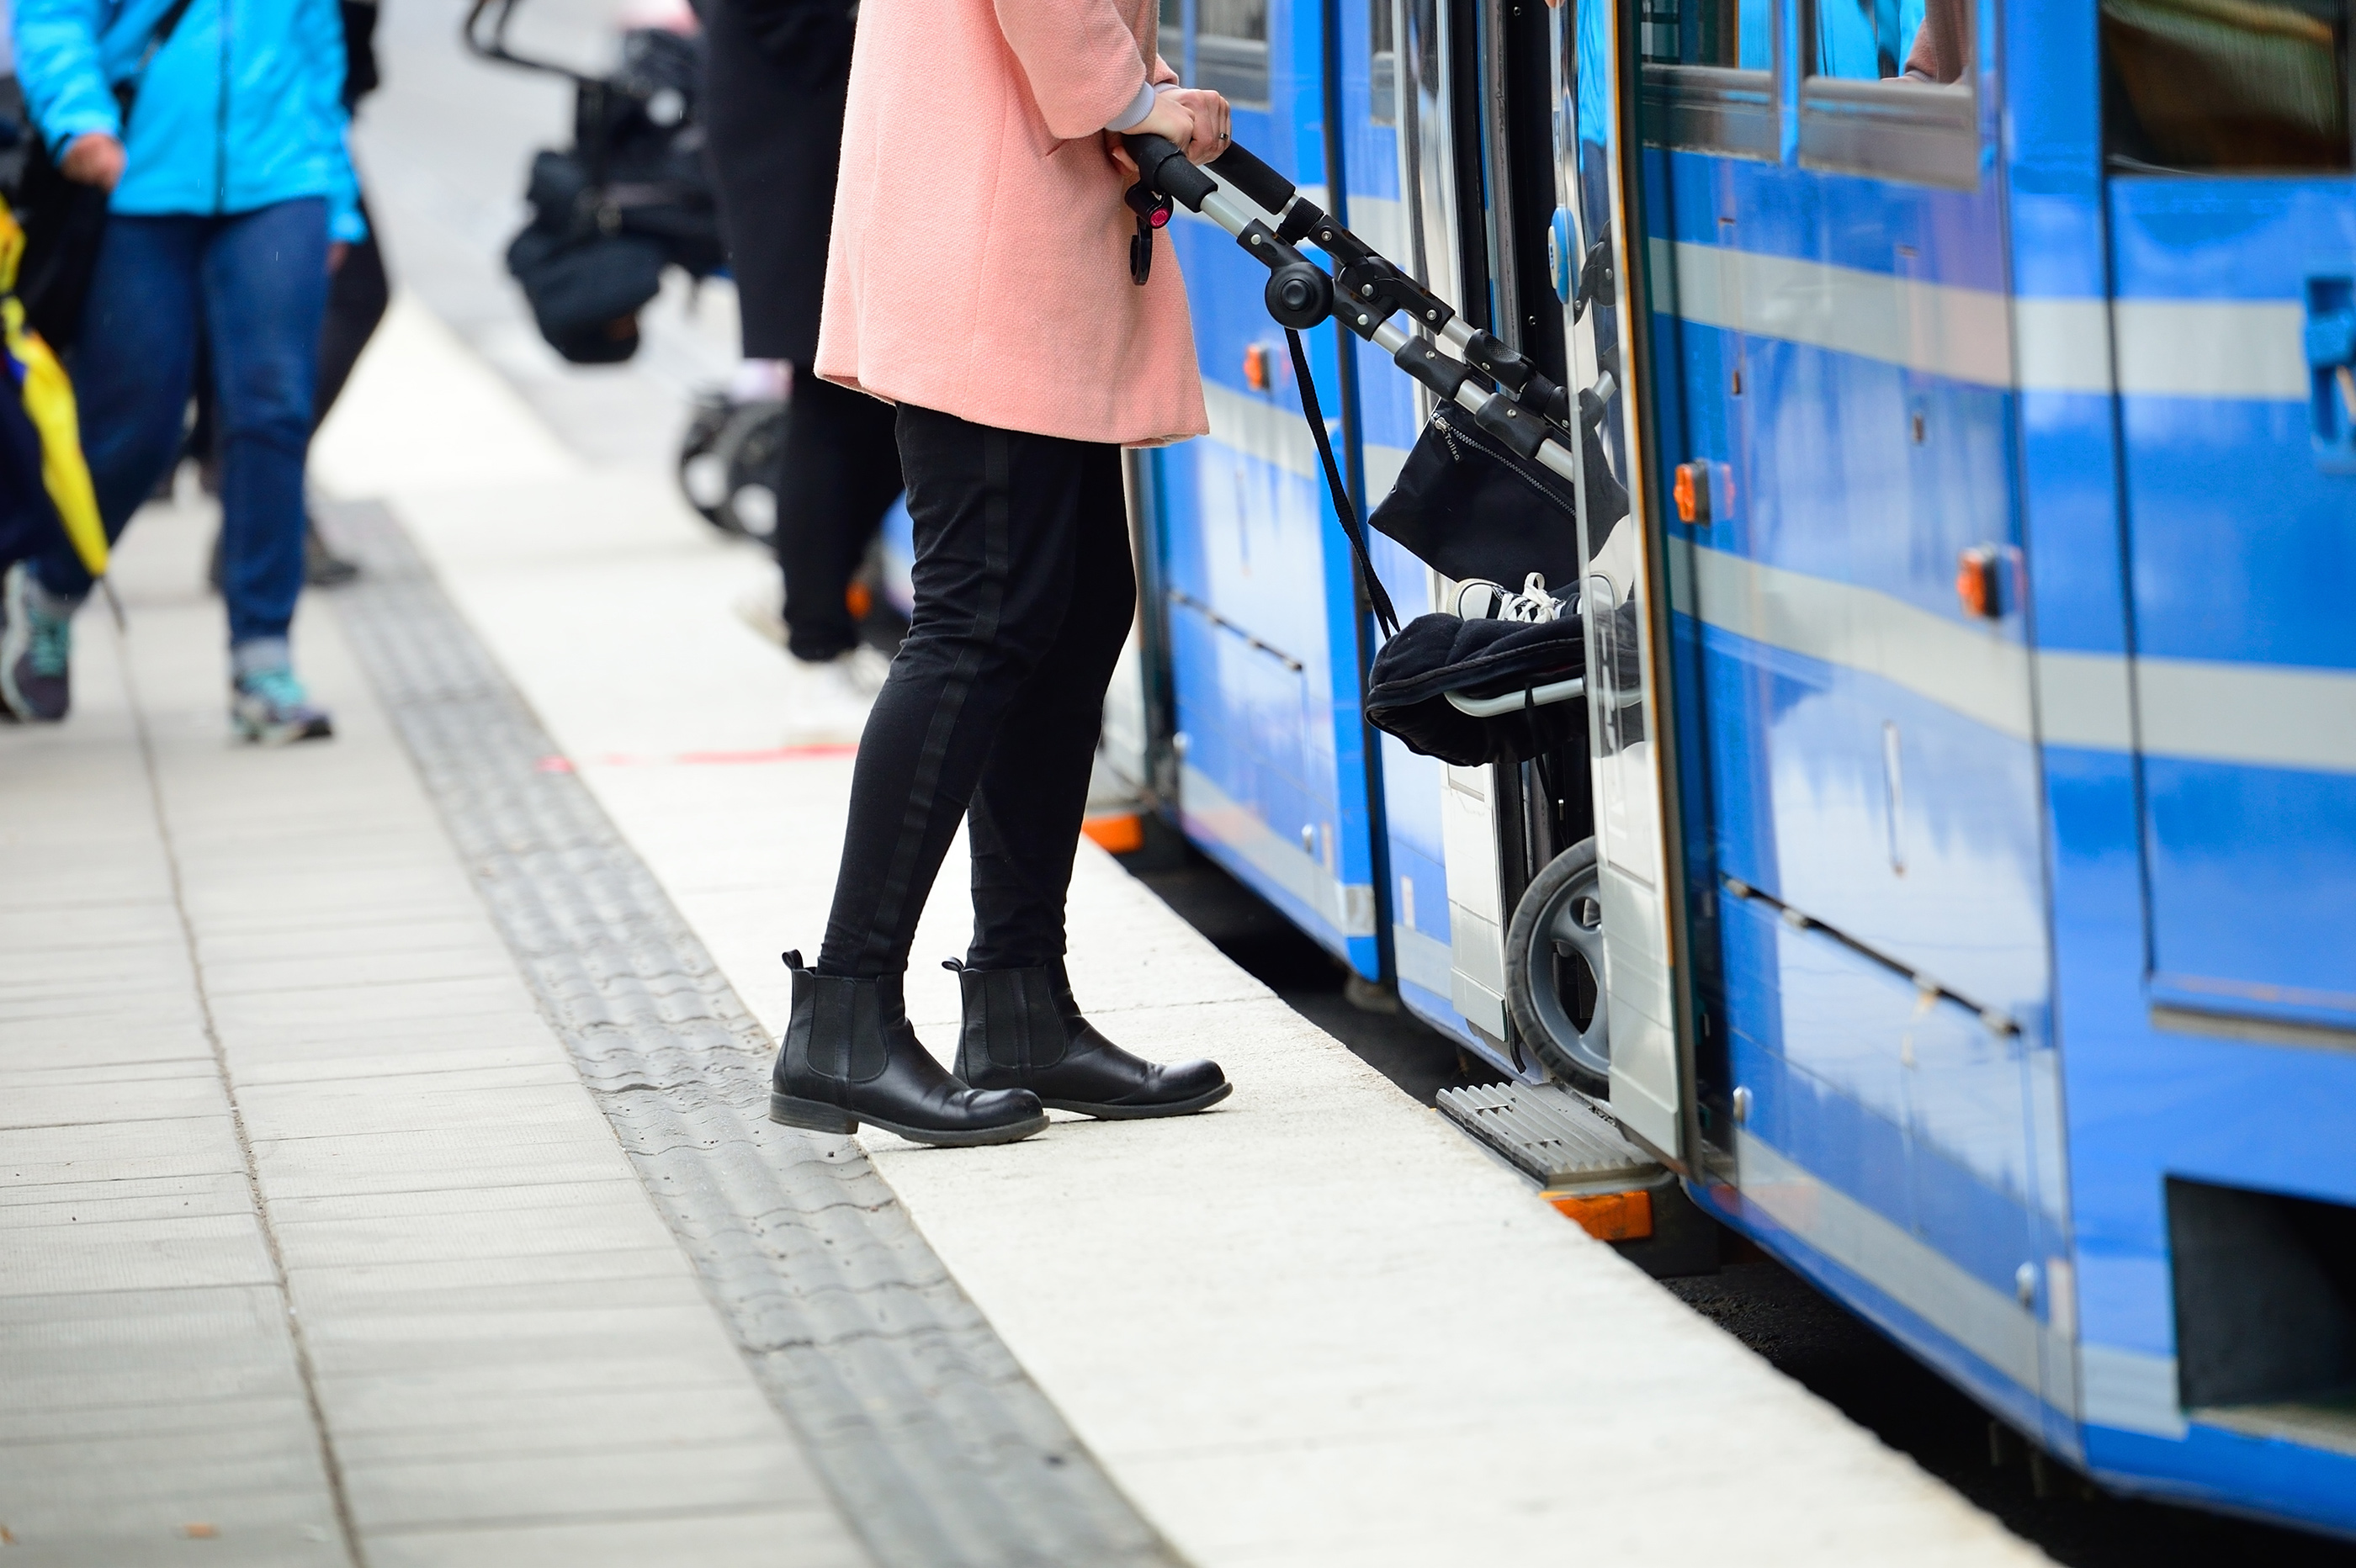 Strollers Can Be Dangerous on Public Transit. Here's What Parents Should Know